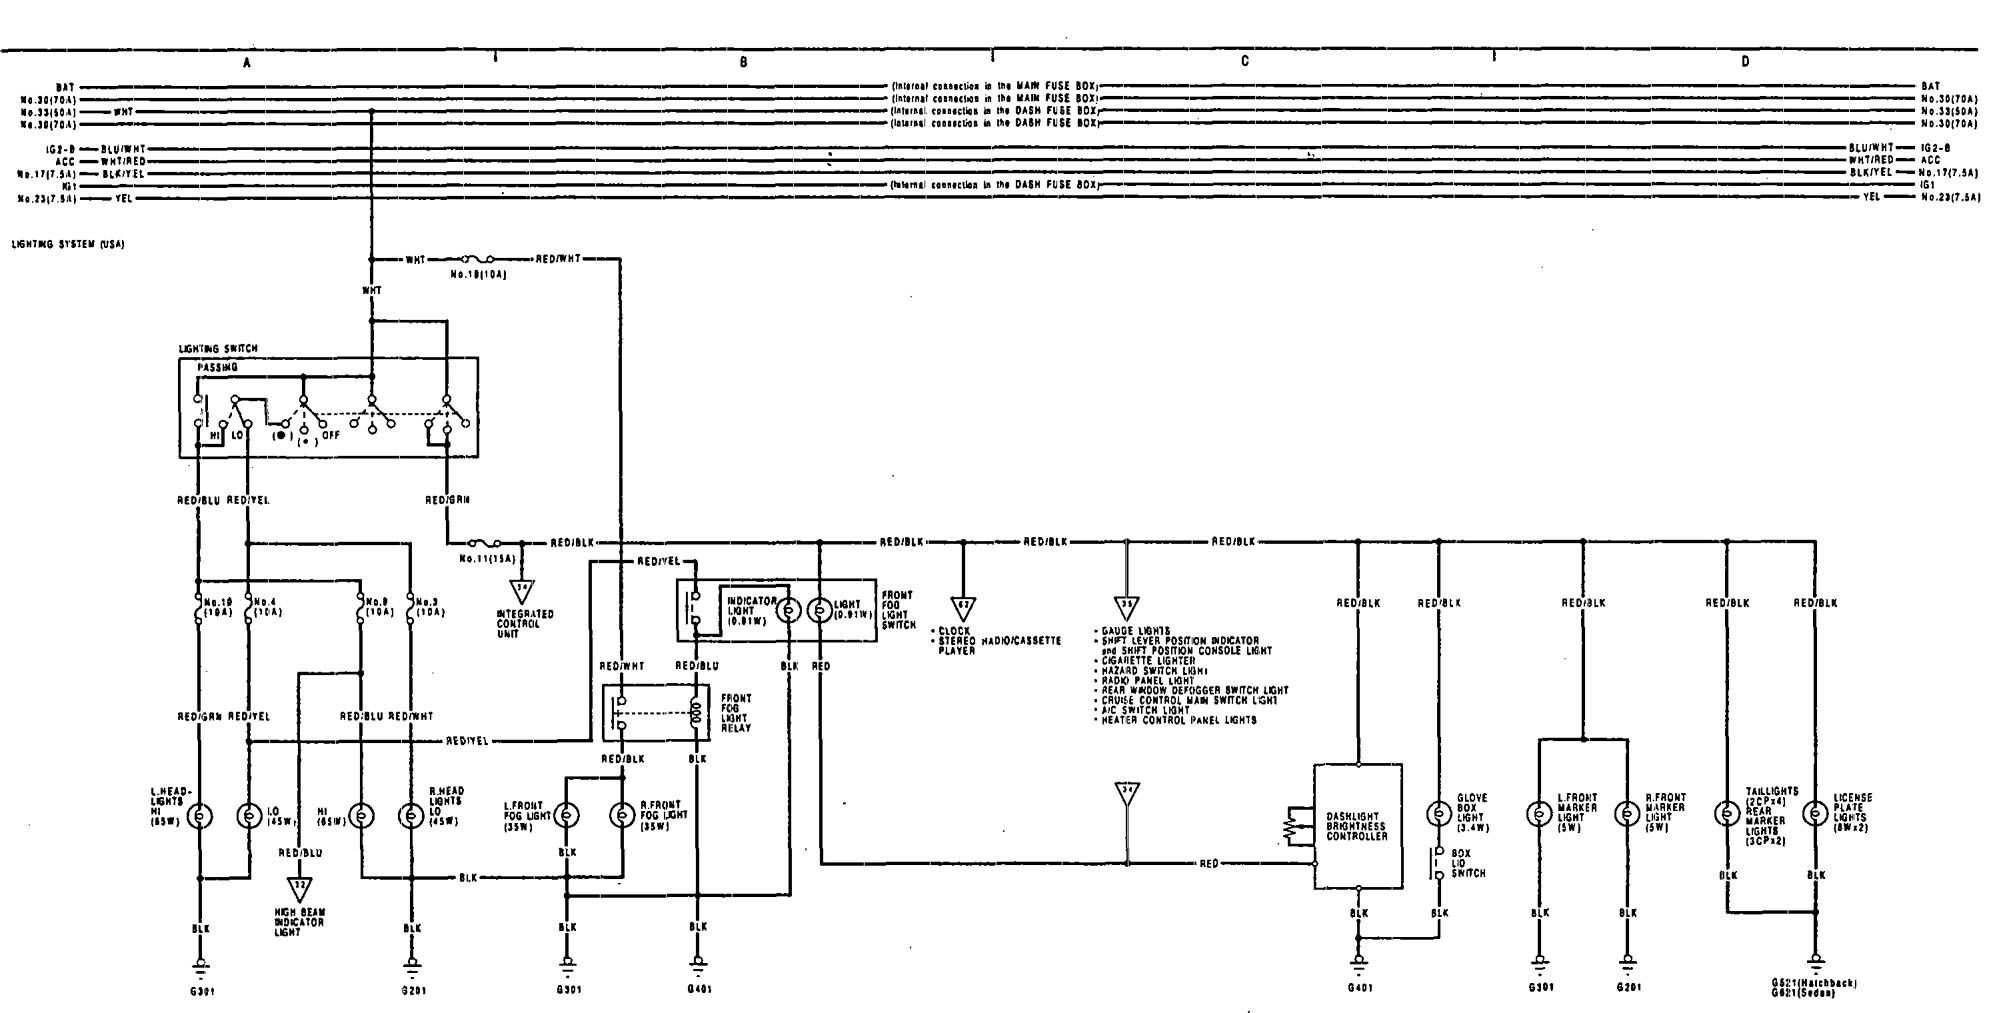 Wiring Diagram For 1991 Acura Integra Data Diagrams 1990 Headlamps 1995 Headlight